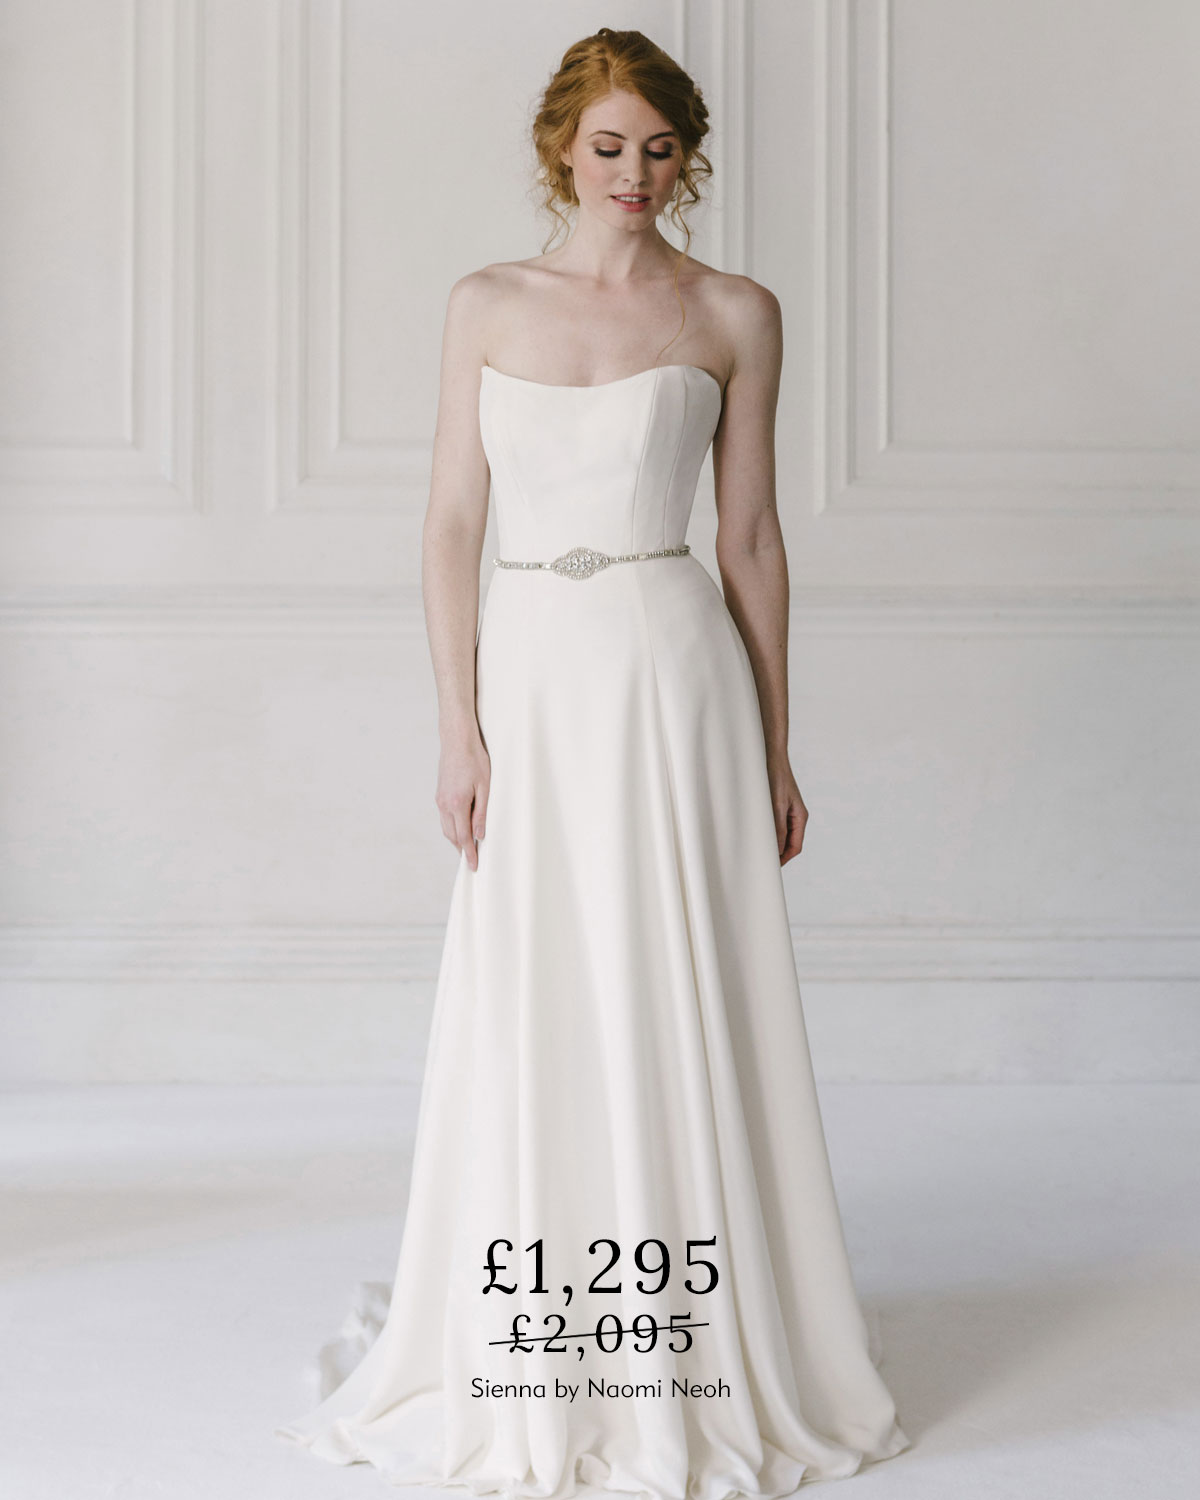 The White Room Top 20 Sample Sale Dresses